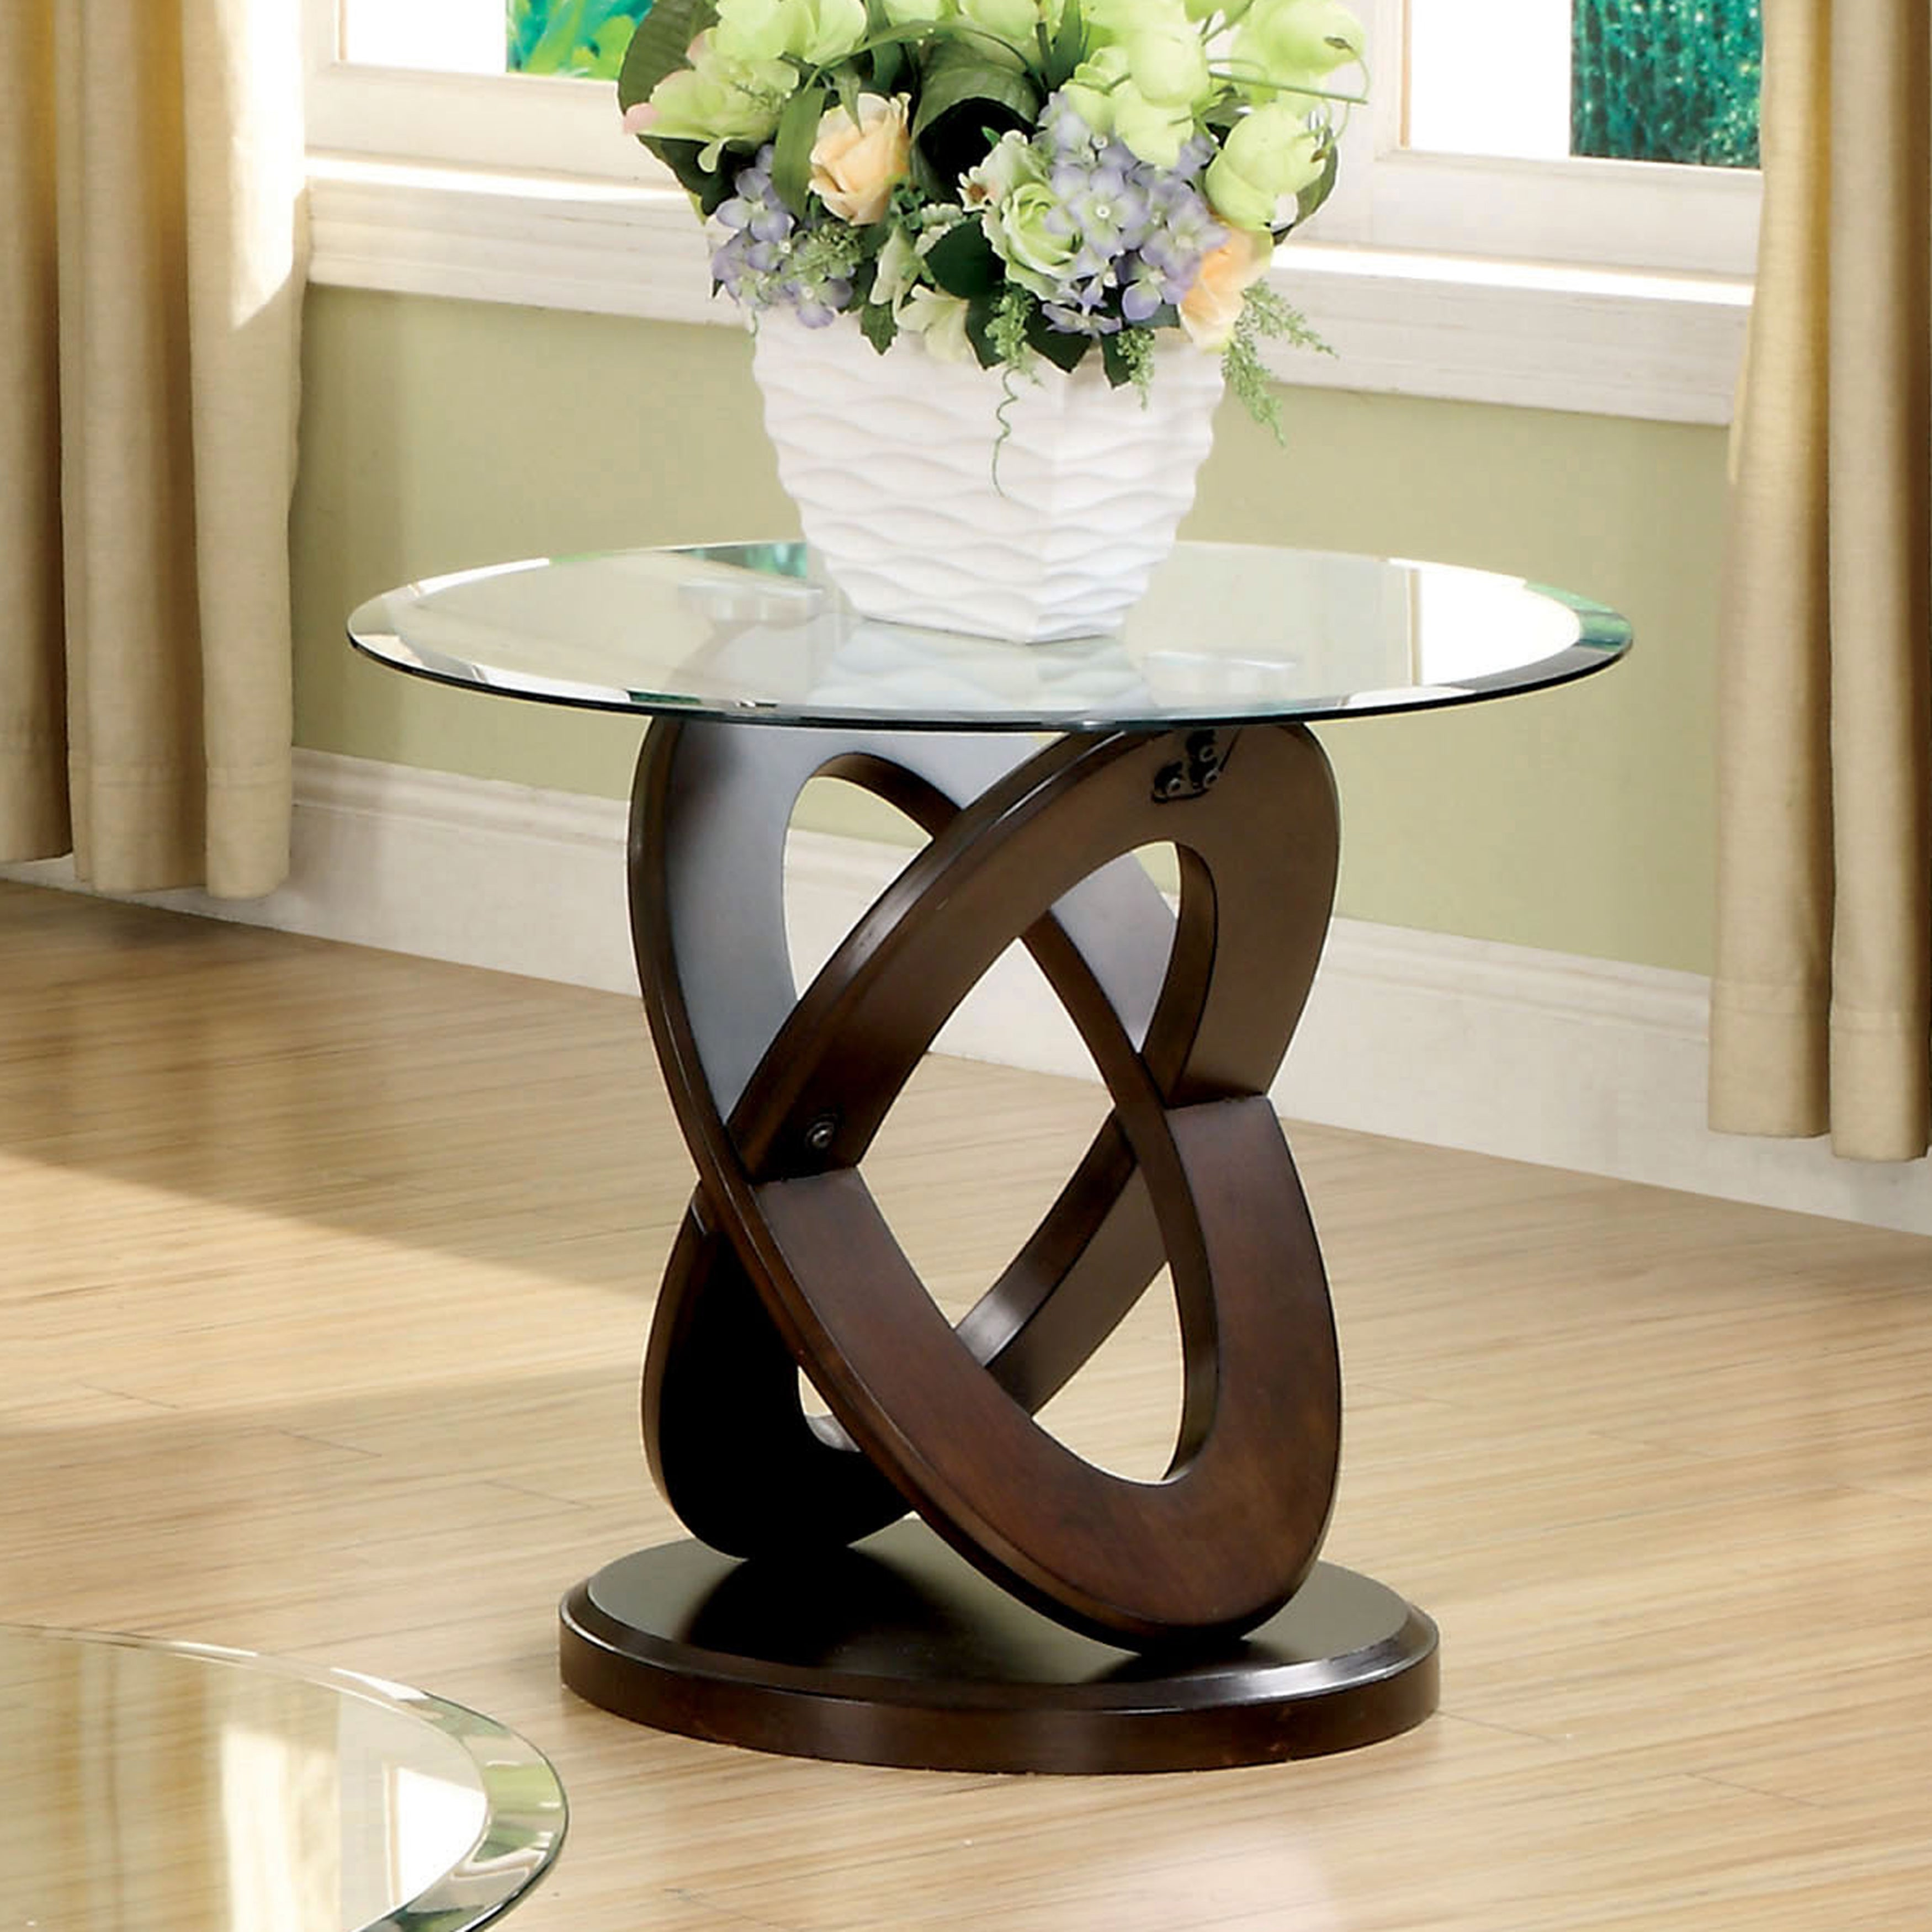 Shop furniture of america evalline round glass top end table on sale free shipping today overstock com 11871032